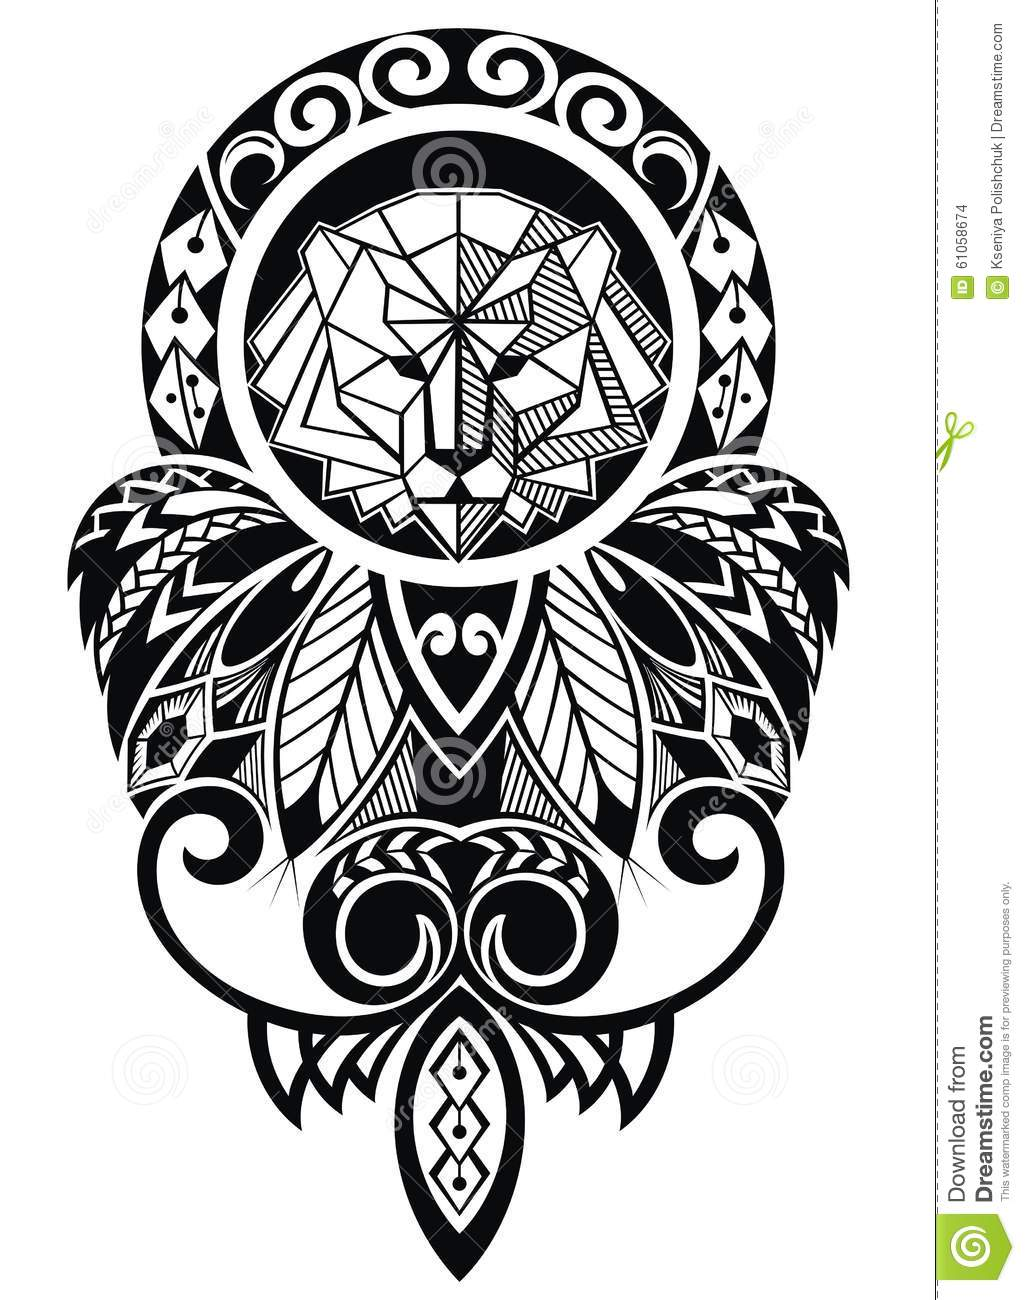 Illustration Stock Conception De Tatouage Avec Le Lion Image61058674 likewise 215891375865815852 also 318 Sticker Arbre Olivier in addition 1101 Stickers Arabesque Fleur furthermore Pajaro Origami. on origami floral